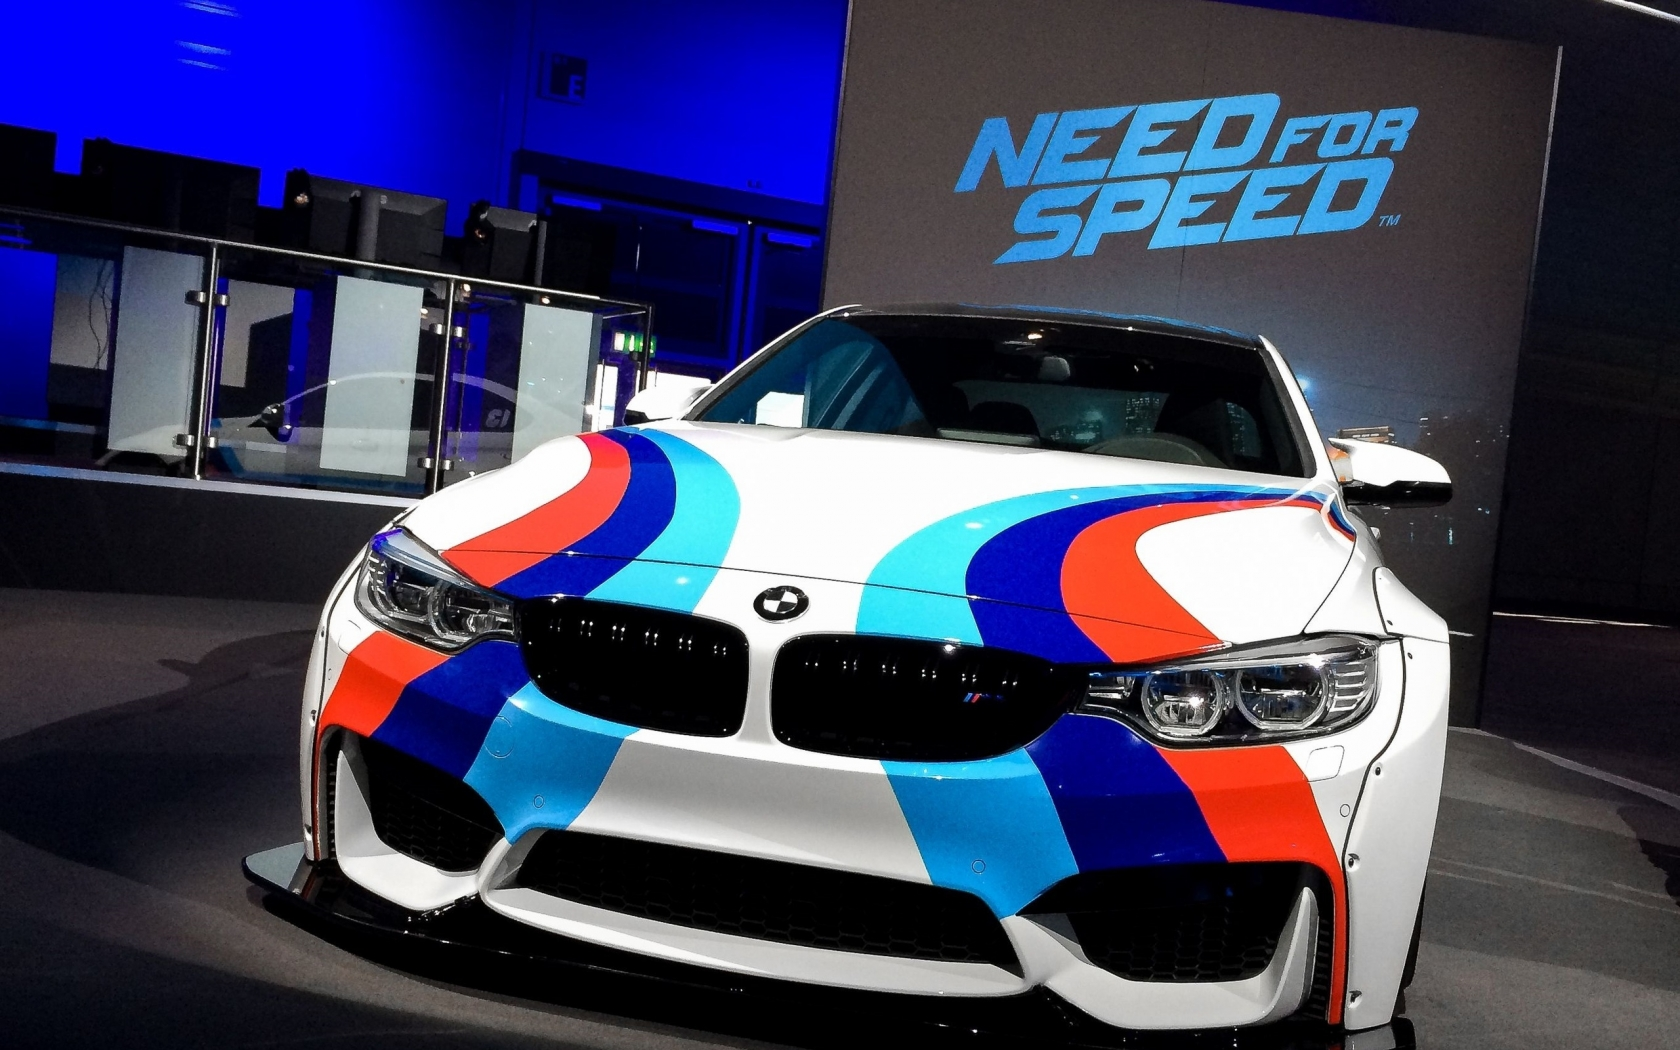 Need For Speed BMW for 1680 x 1050 widescreen resolution